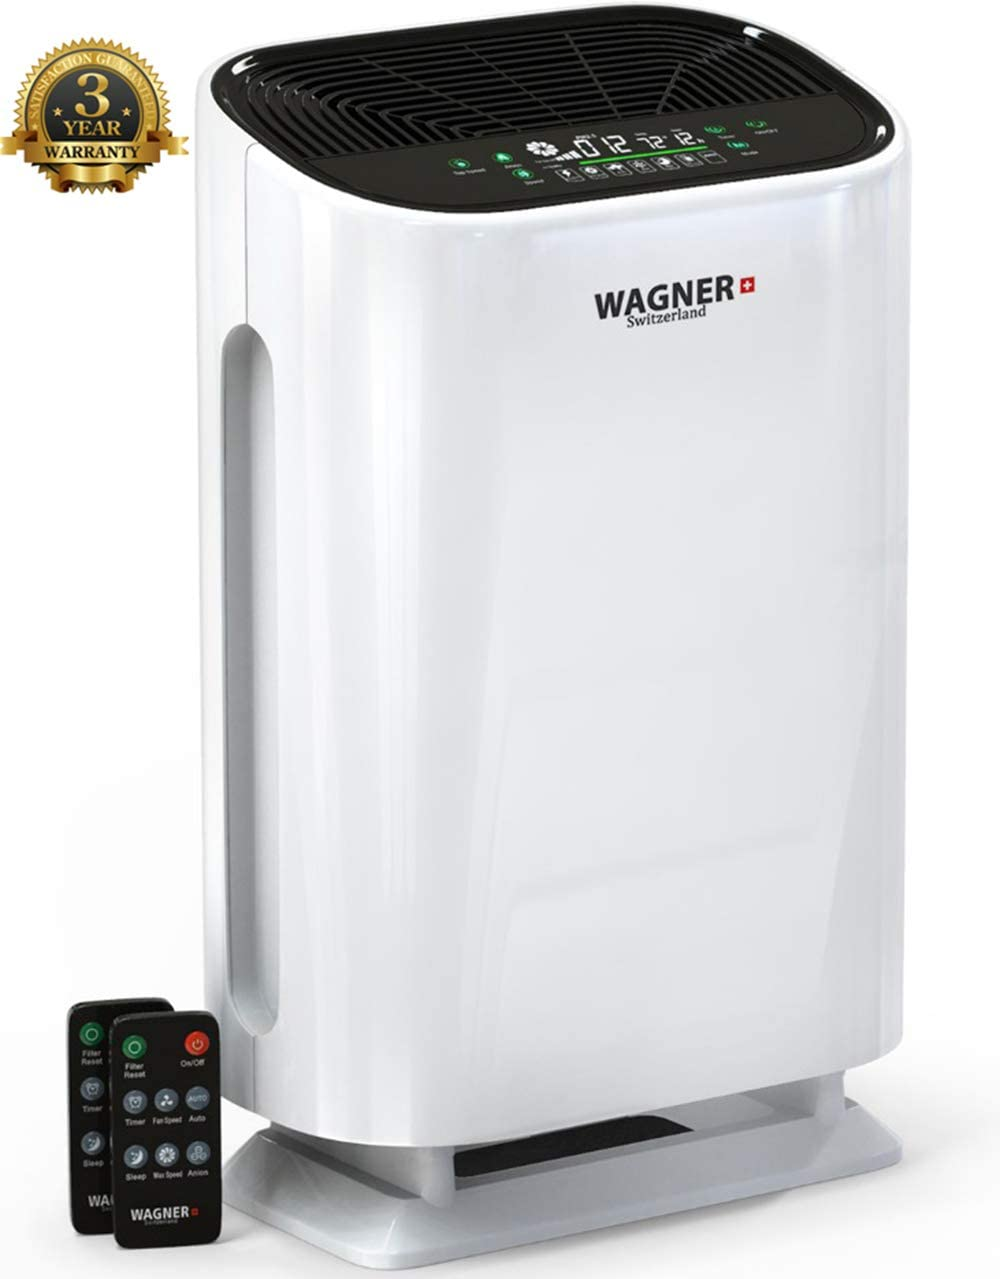 WAGNER Switzerland Air Purifier WA888 with Air Quality Monitor with Particle Sensor for Rooms up to 500 sq.ft. Removes Mold, Odors, Dust, Smoke, Allergens, Germs and Pet Dander. HEPA Filter 5-Stage.